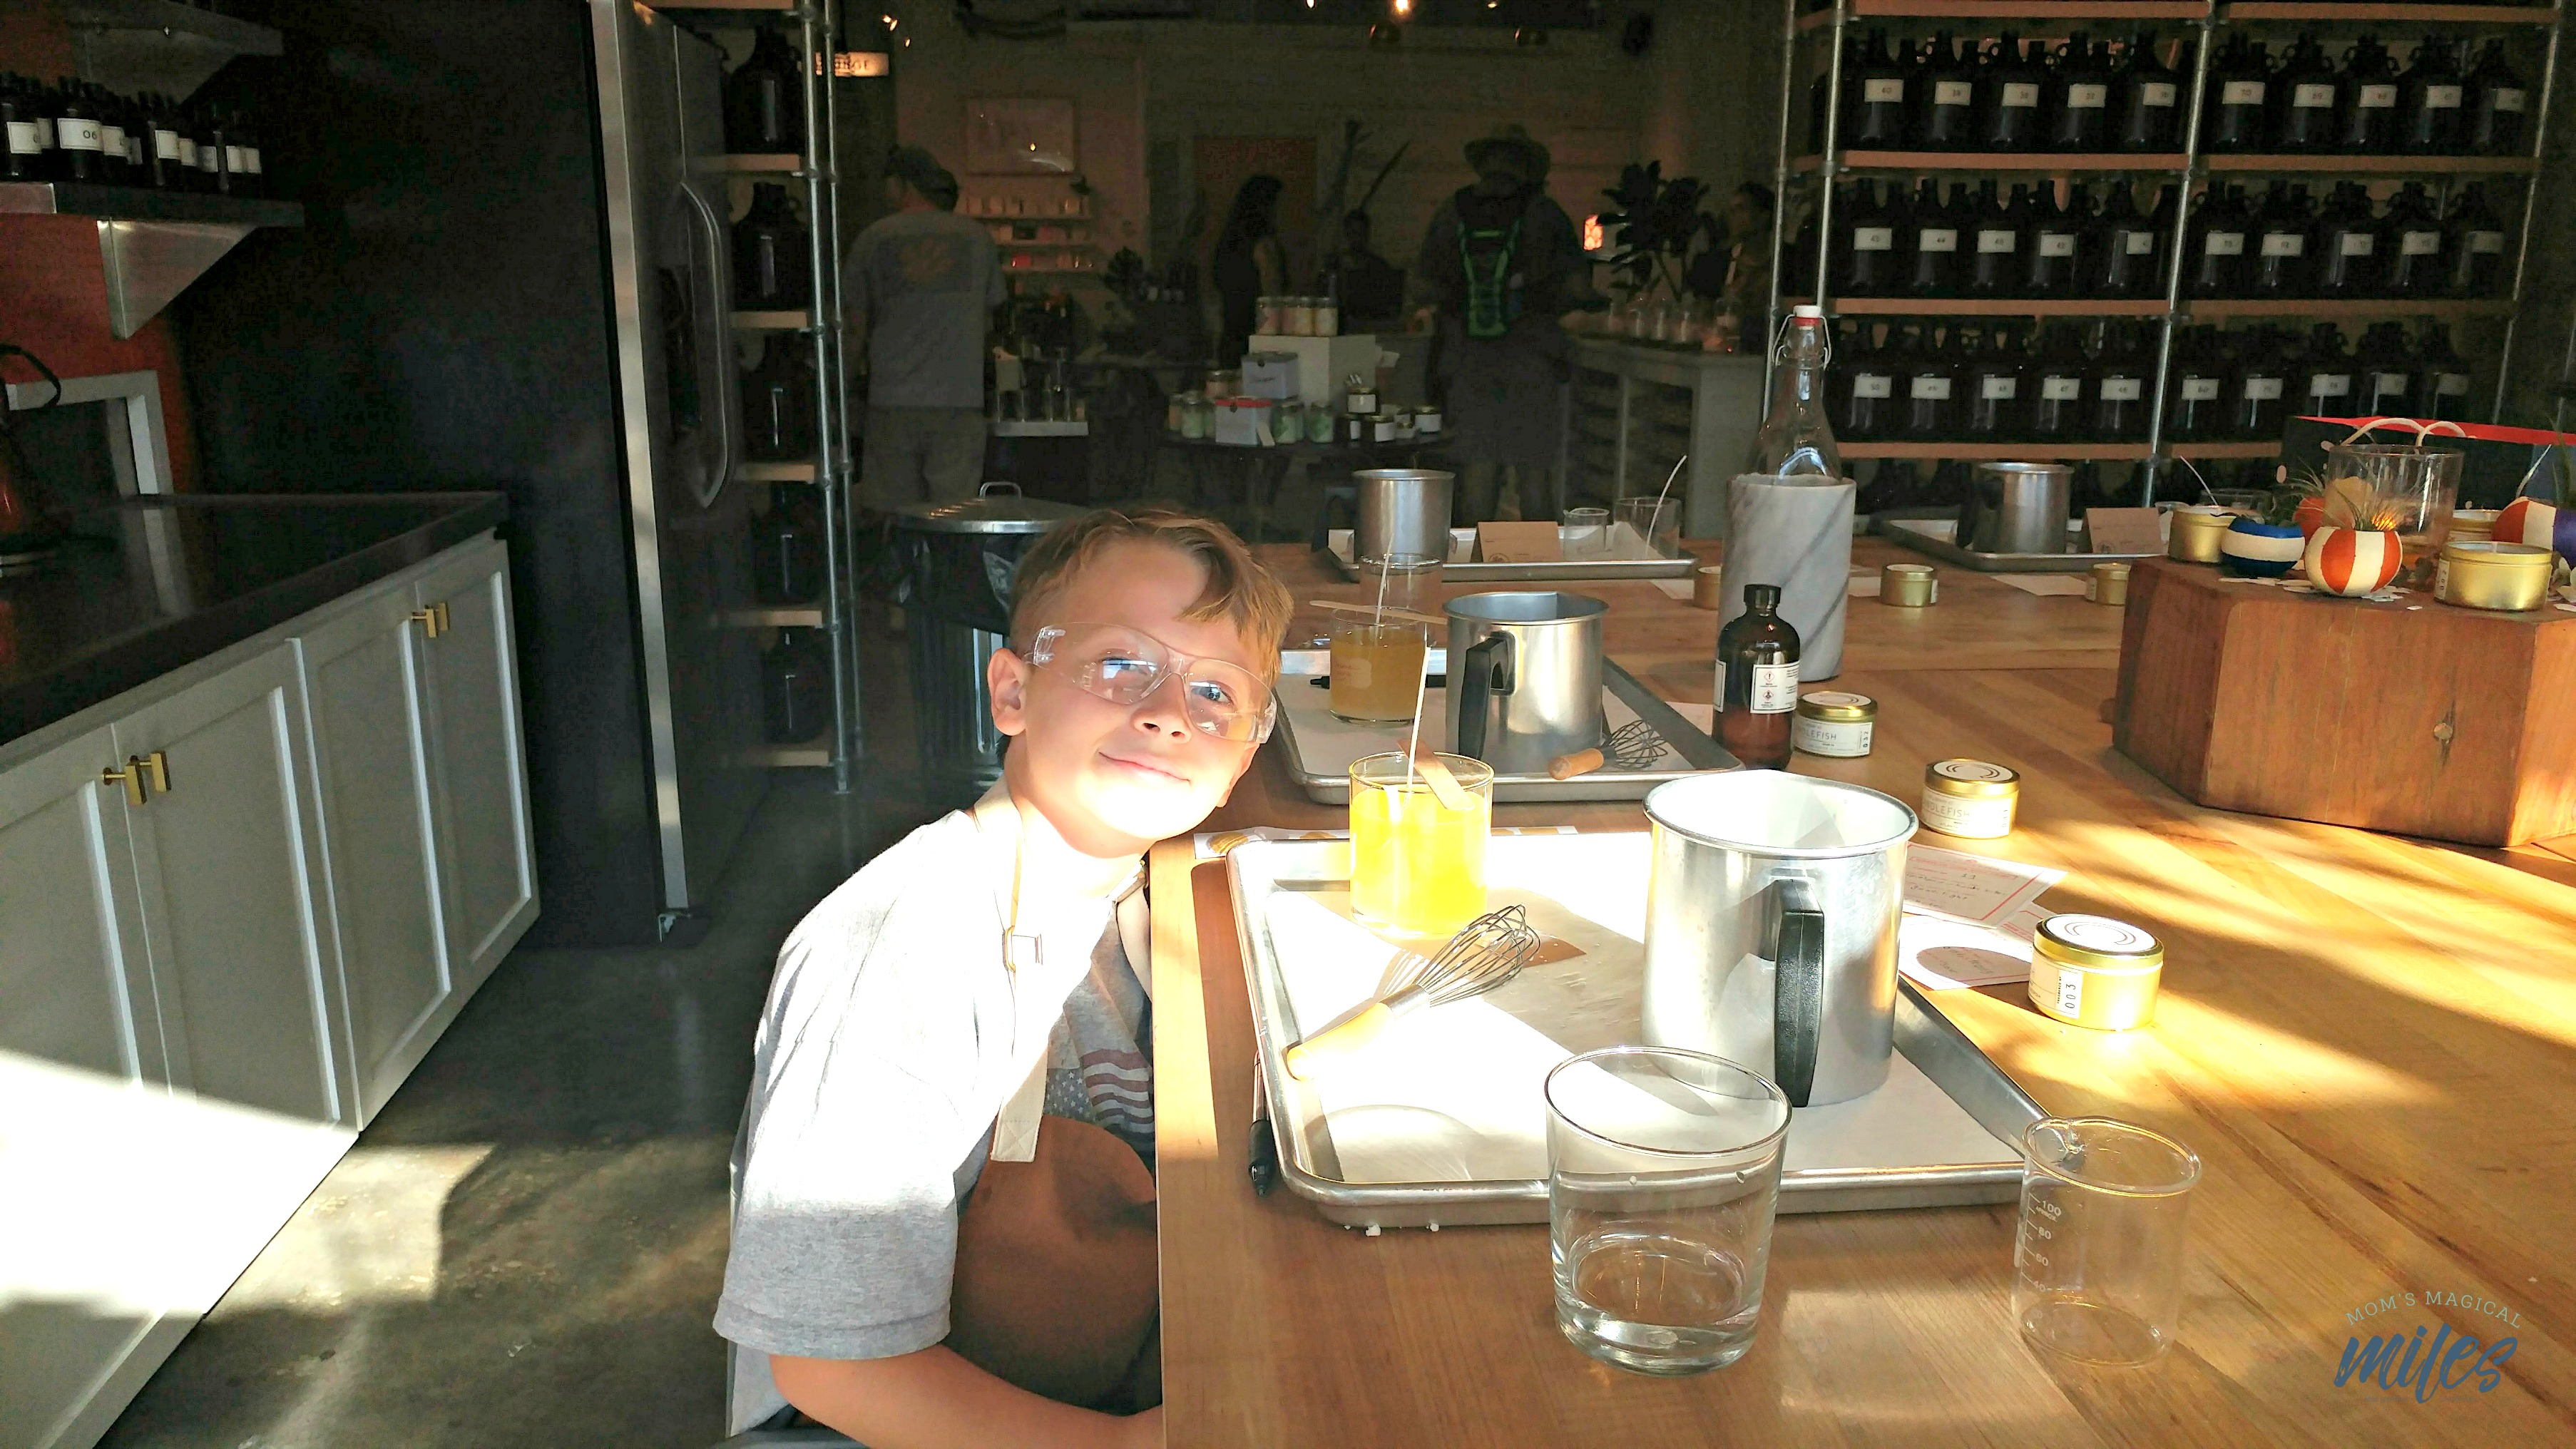 Kids can feel proud of crafting their very own candle at the Candlefish Atlanta Junior Chandler Workshop!